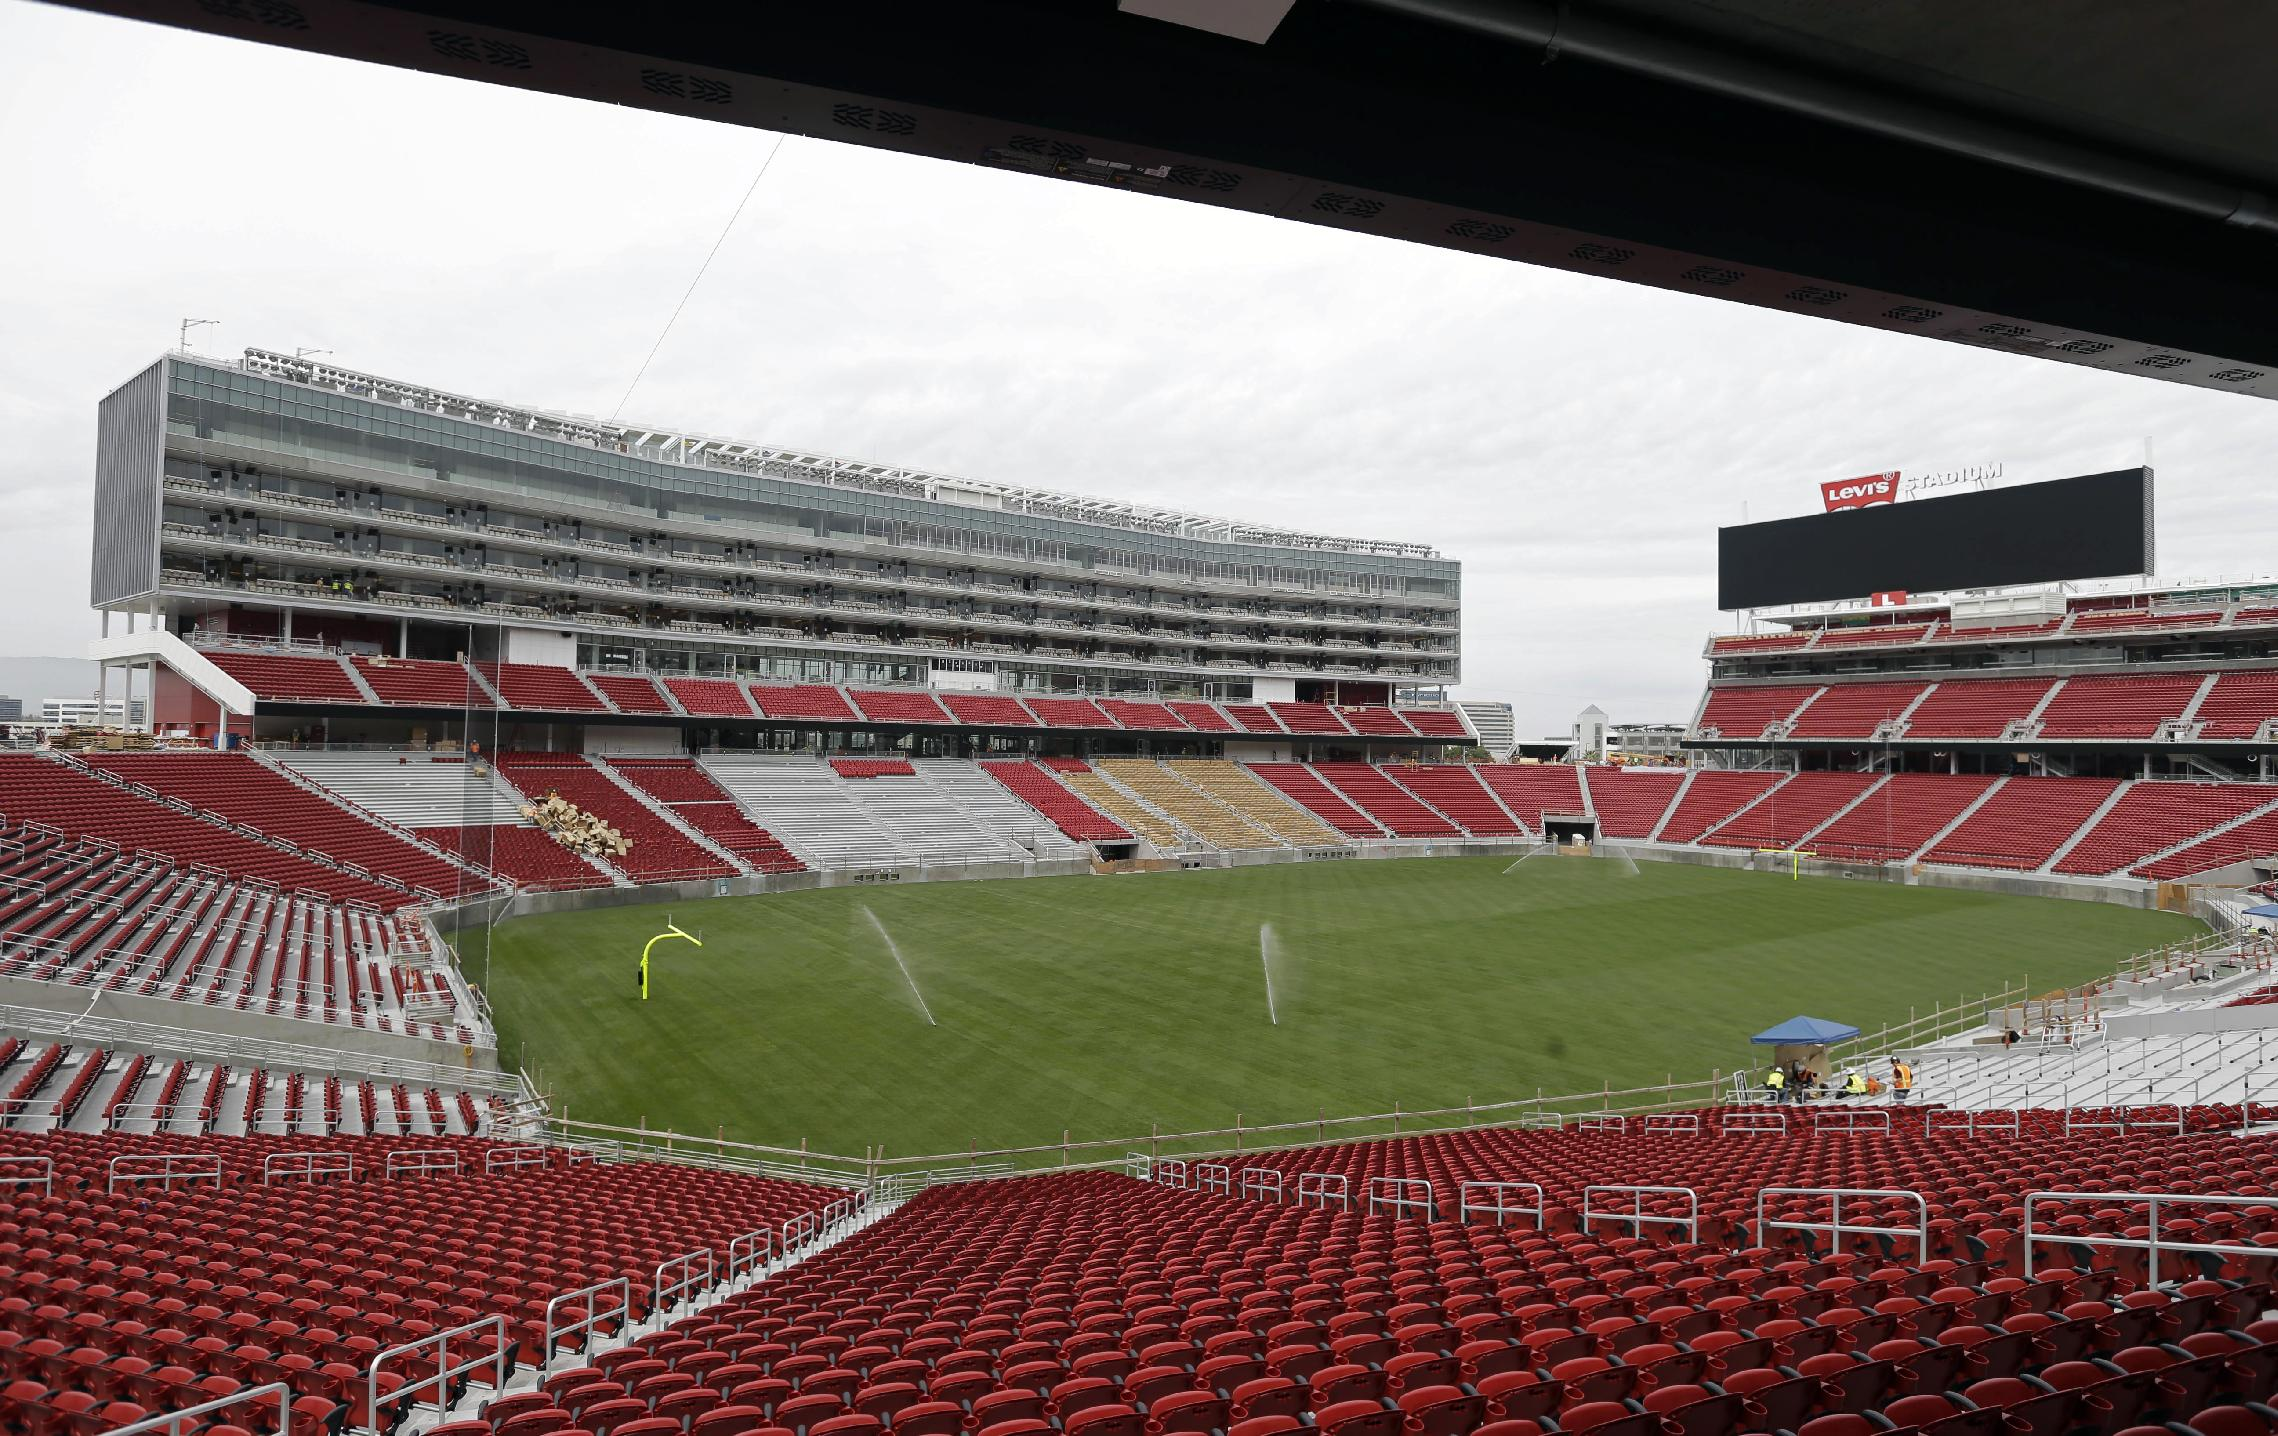 Pac-12 mulls moving title game to 49ers stadium